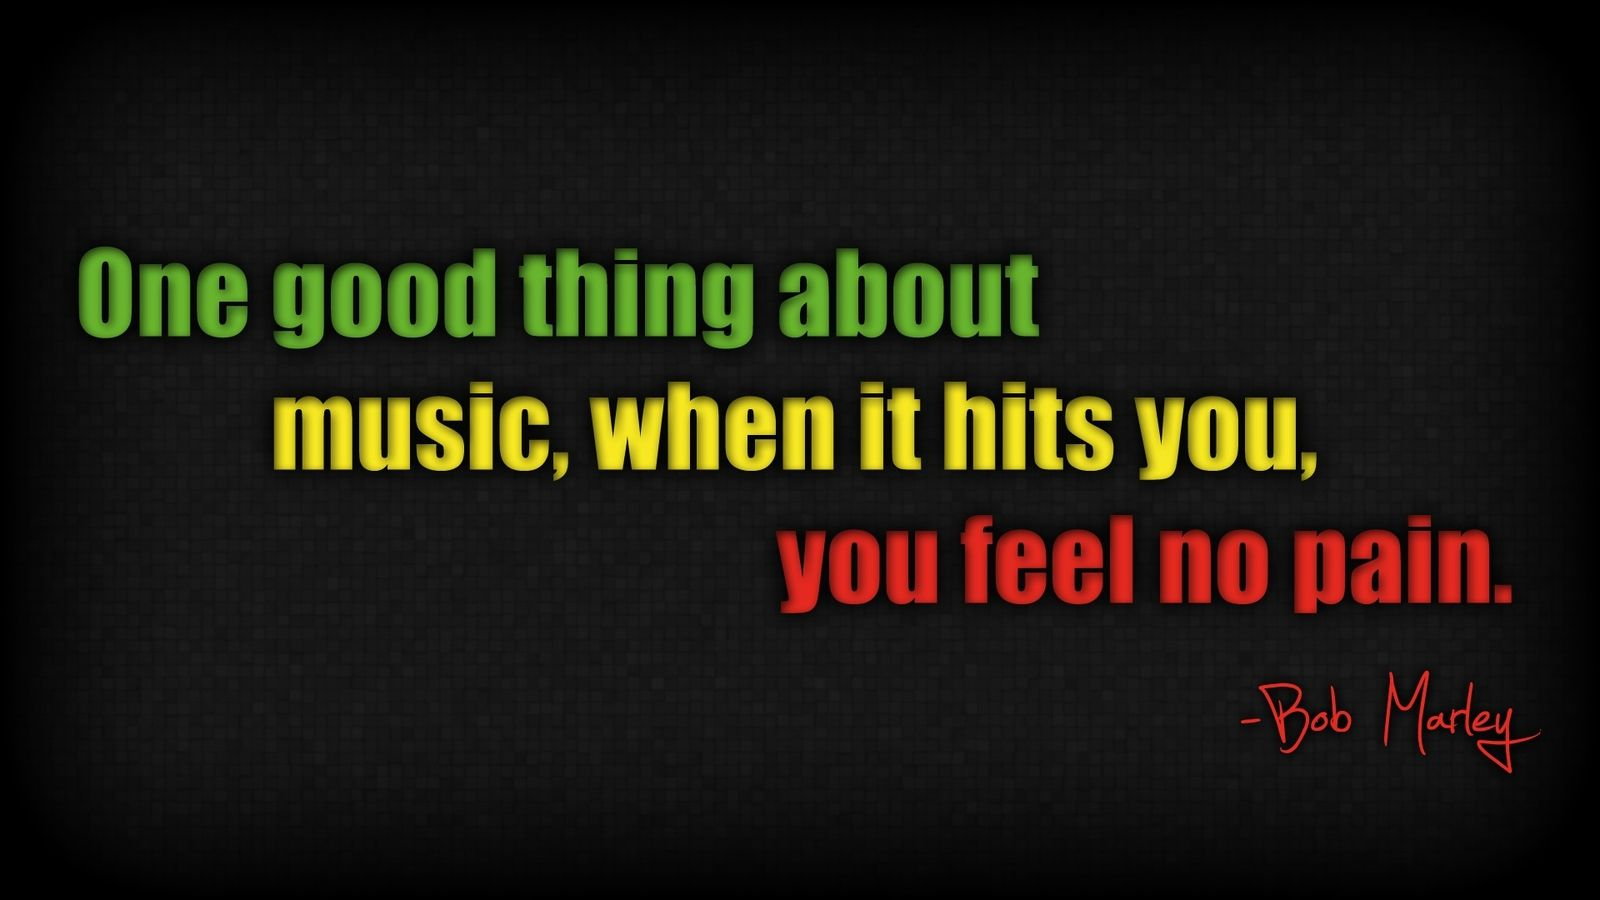 1600x1200 Px Hd Wallpapers Bob Marley Music Quotes Wallpaper